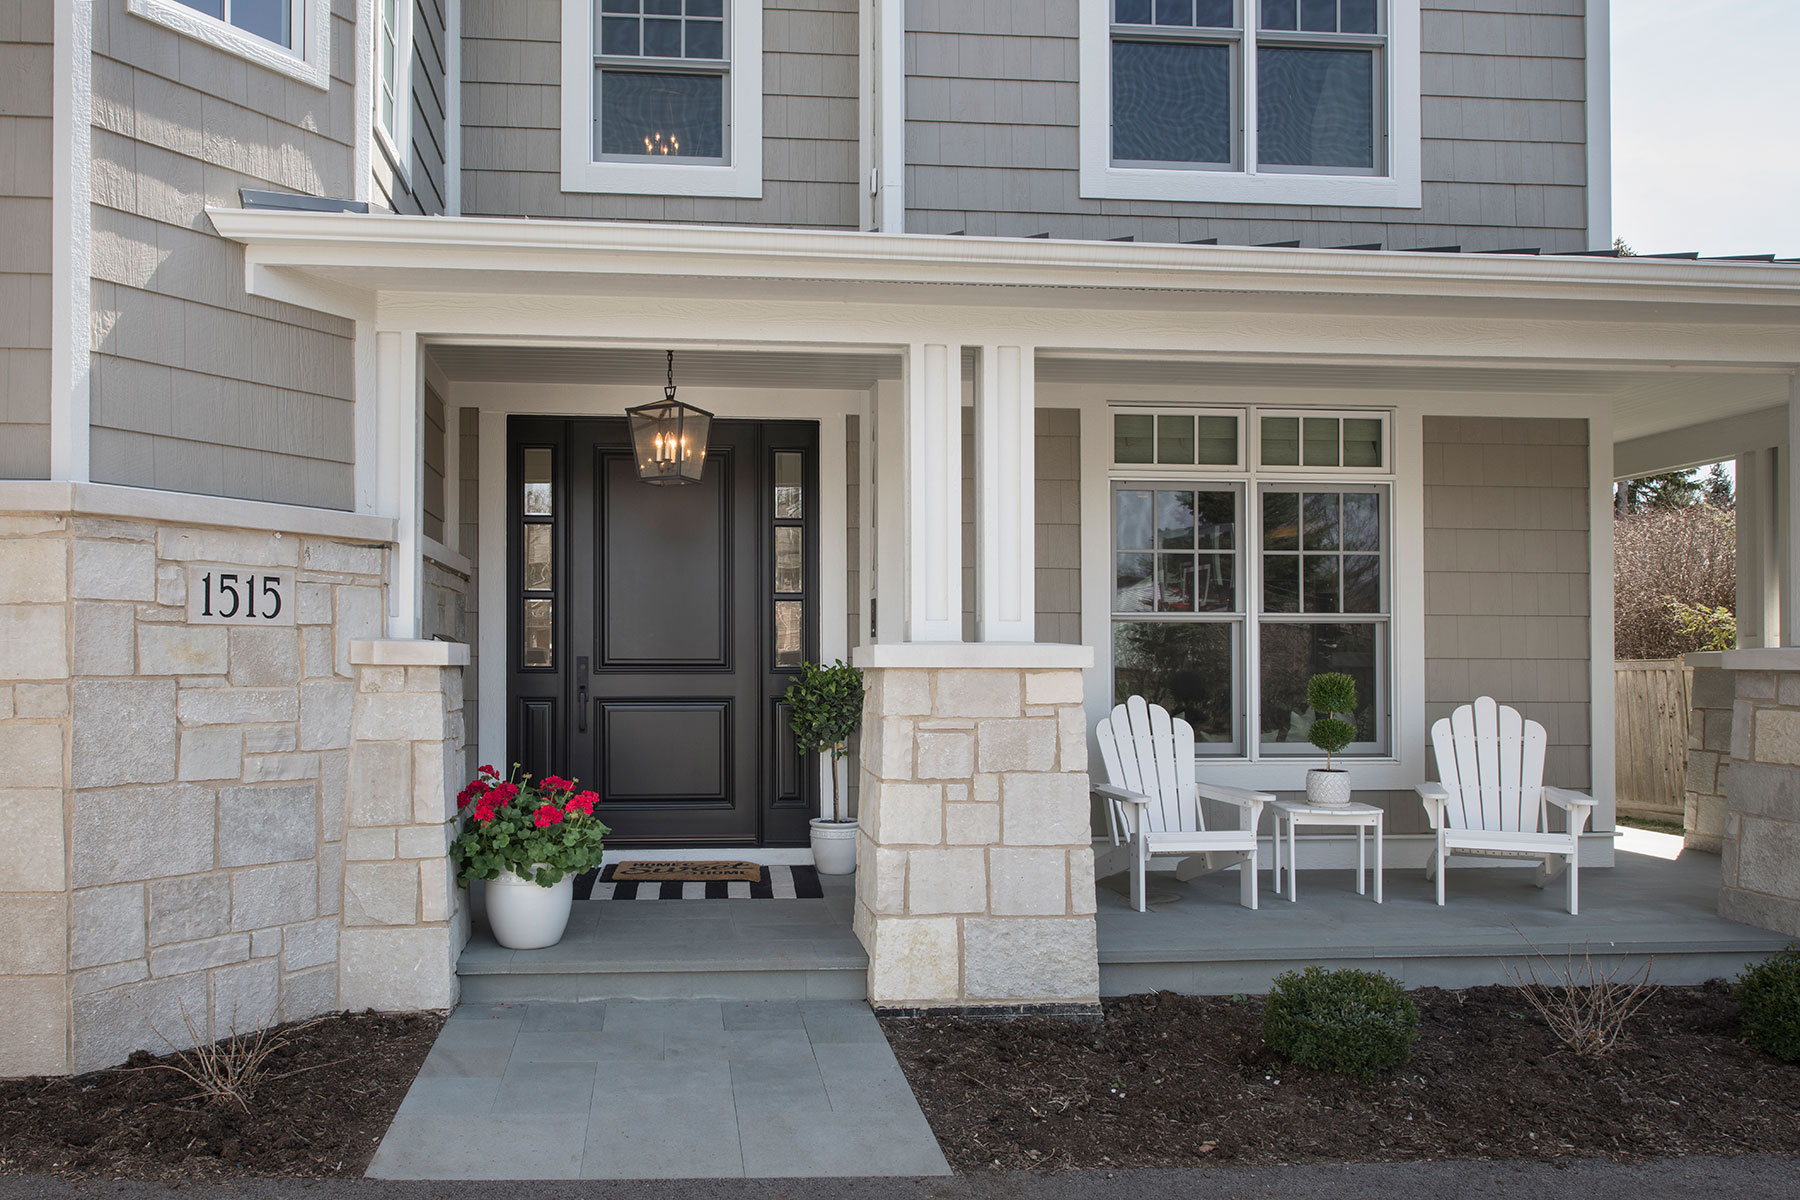 Wood Front Entry Doors in-Stock | classic two panel front entry door with sidelites, exterior view DB-301PW 2SL - Glenview Doors - Custom Doors in Chicago